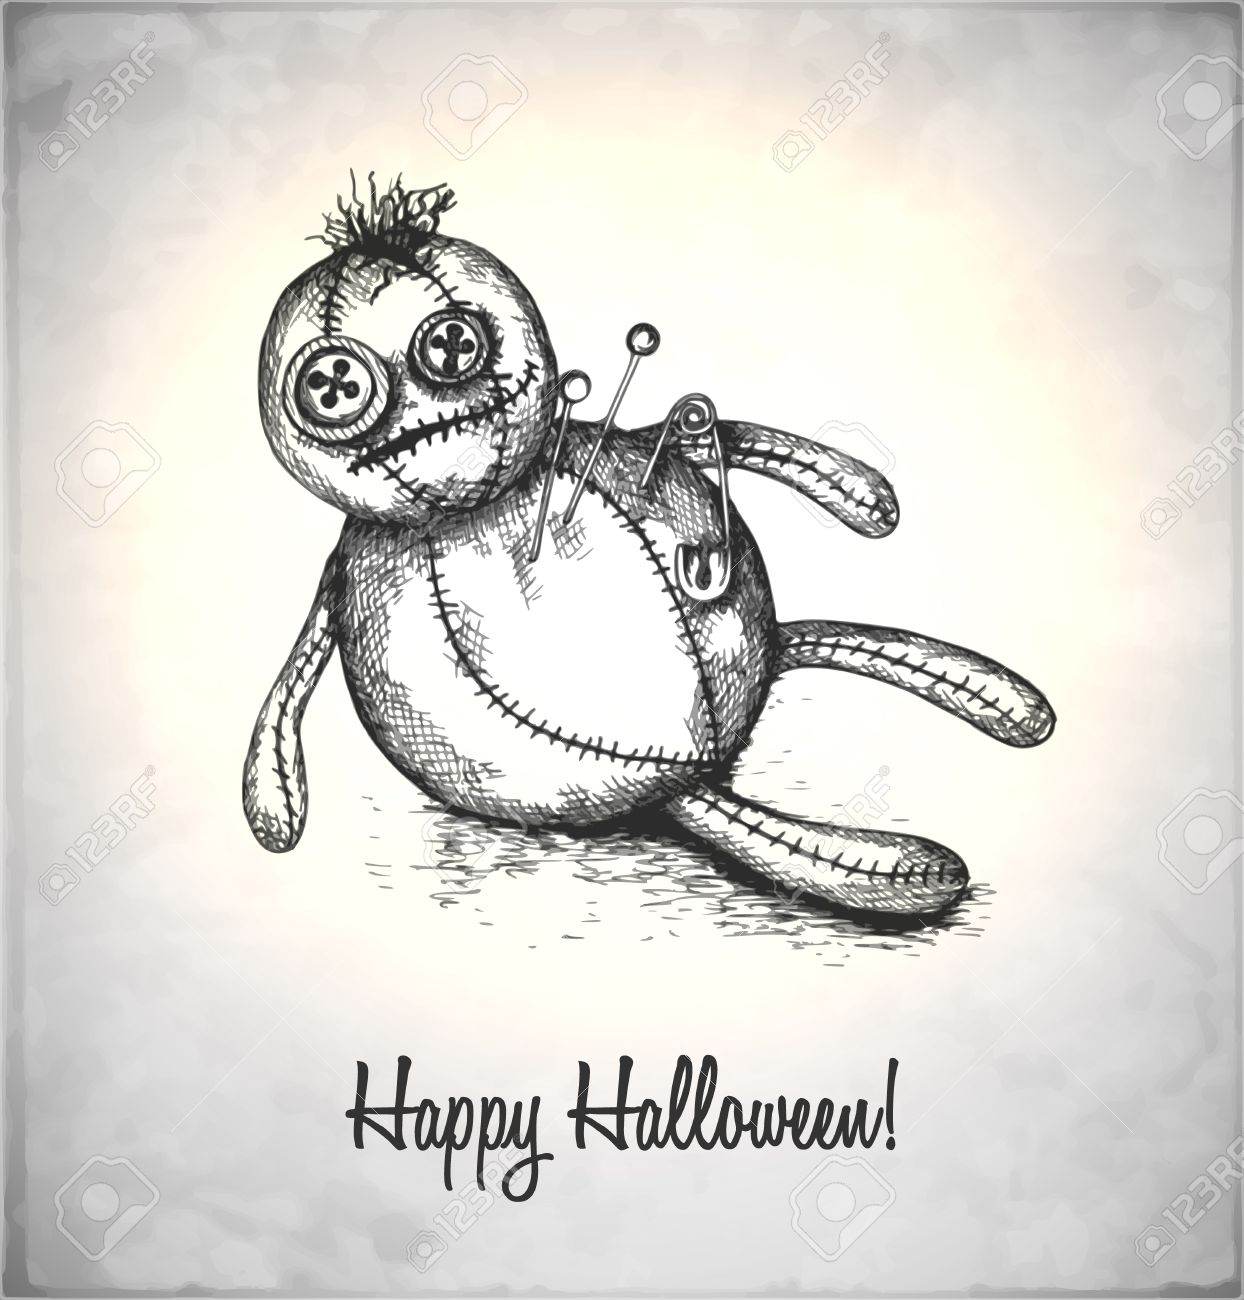 Spooky voodoo doll in a sketch style. Hand-drawn card for Halloween. Stock Vector - 22309948